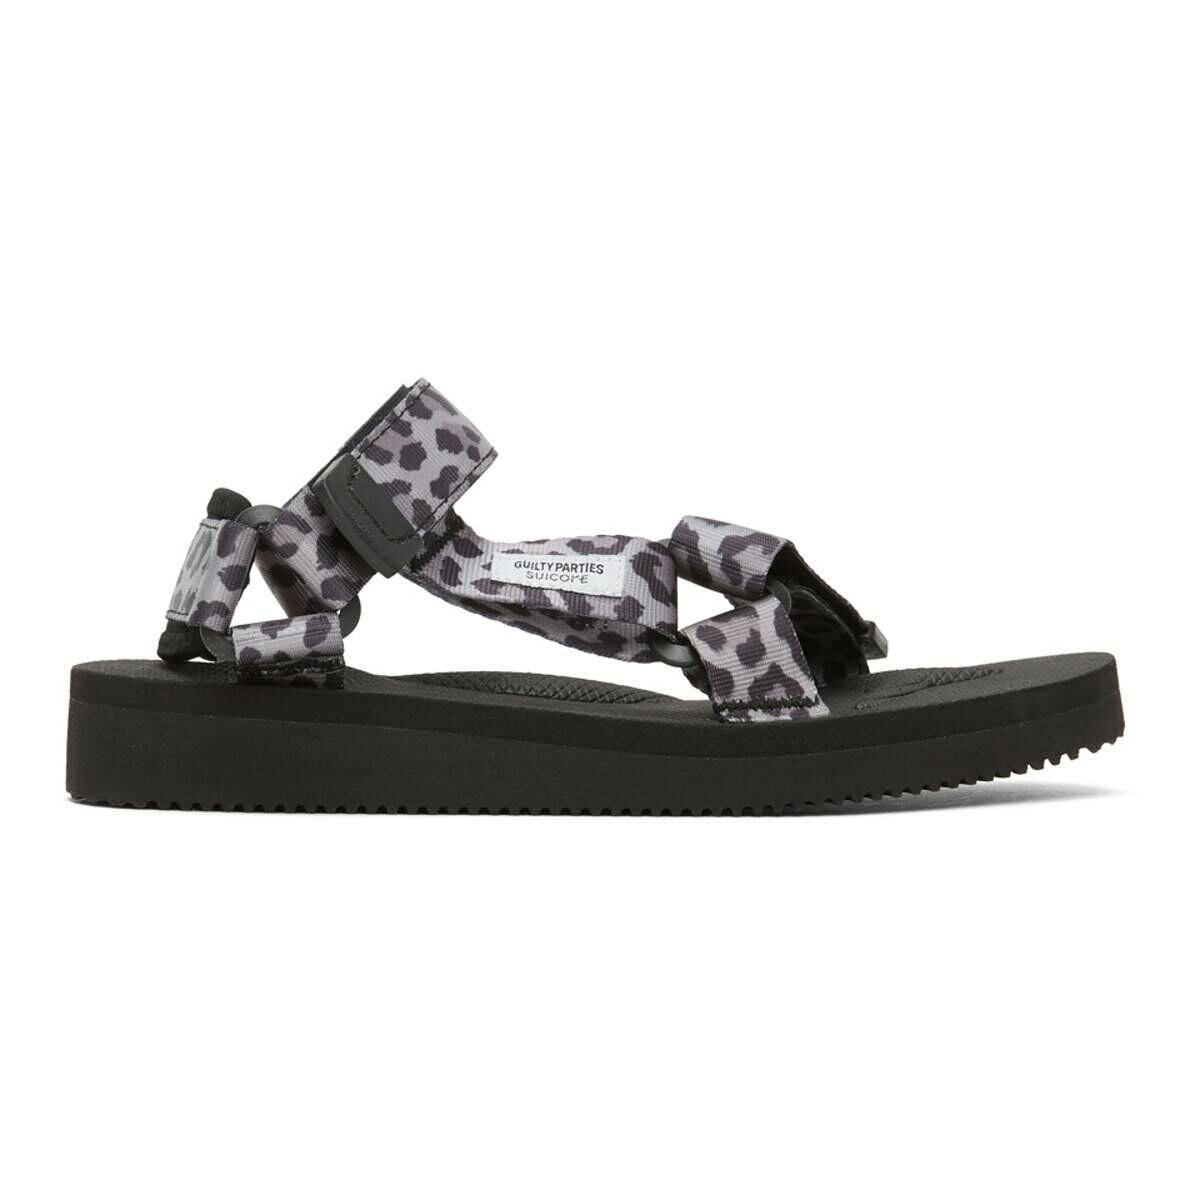 WACKO MARIA Grey and Black Suicoke Edition Leopard Beach Sandals Ssense USA MEN Men SHOES Mens SANDALS